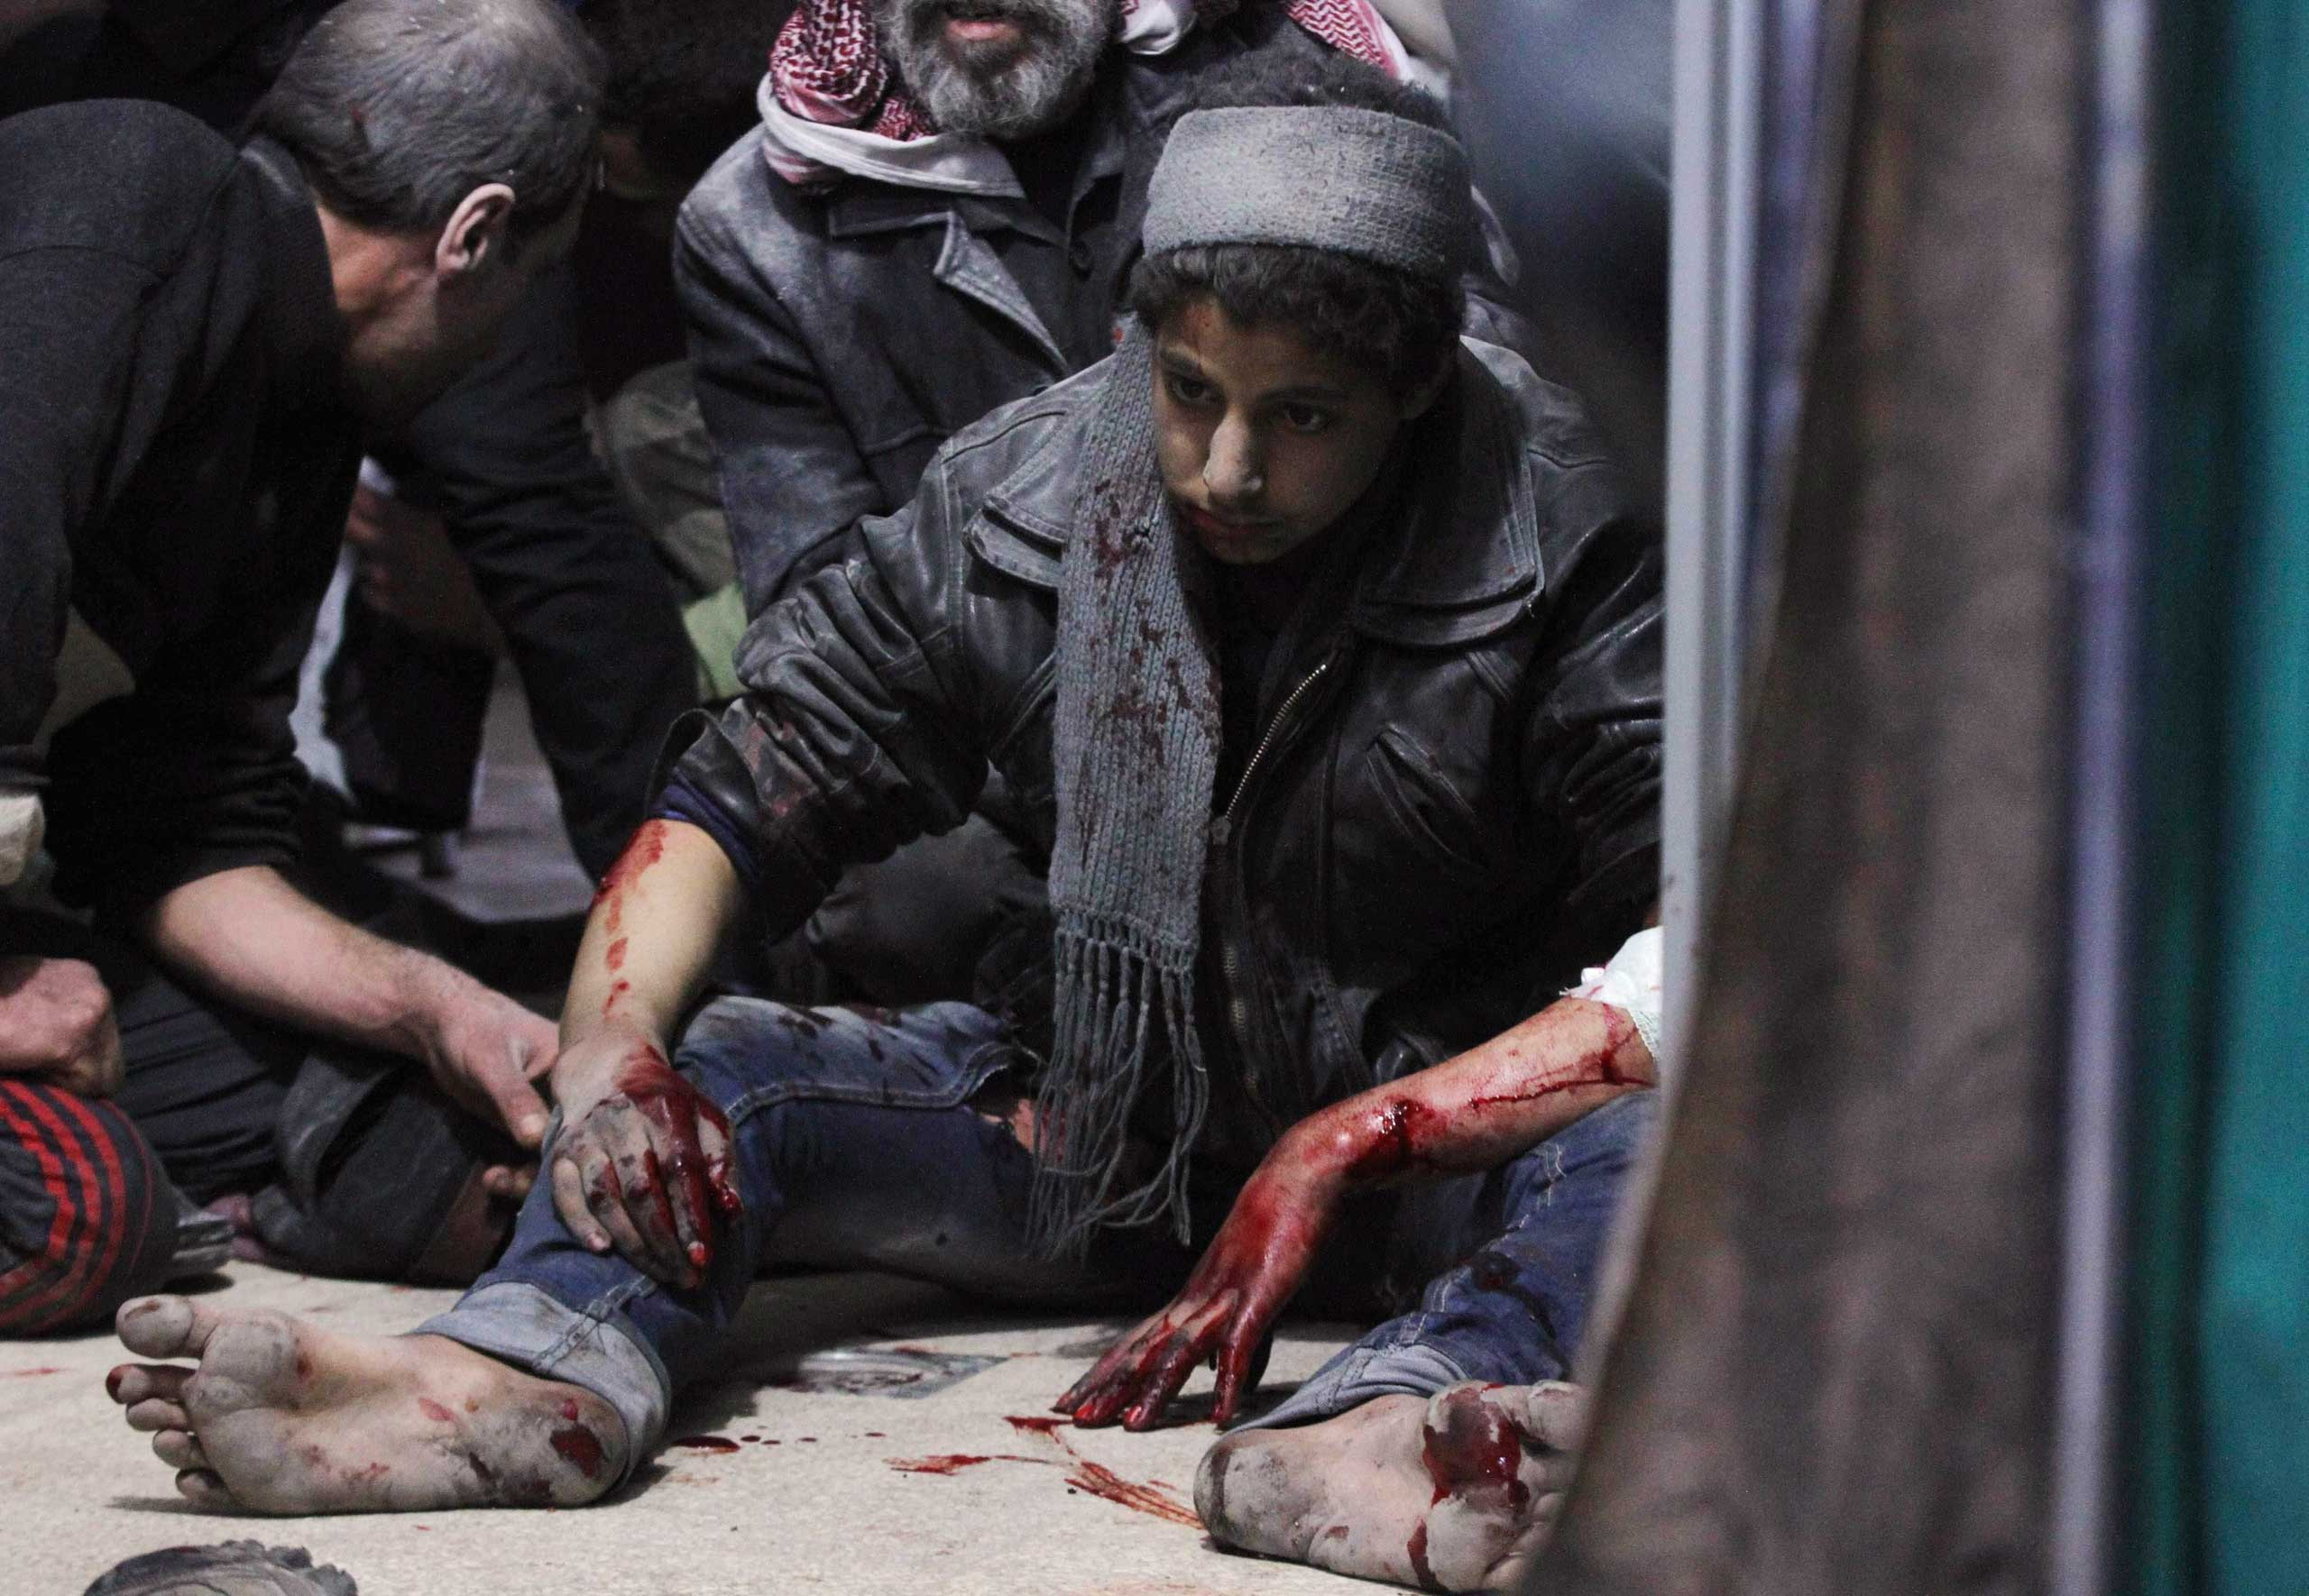 An injured civilian sits inside a shelter as he waits to receive medical assistance after what activists said were airstrikes by forces loyal to Syria's President Bashar Assad in the Douma neighborhood of Damascus, Feb. 9, 2015.